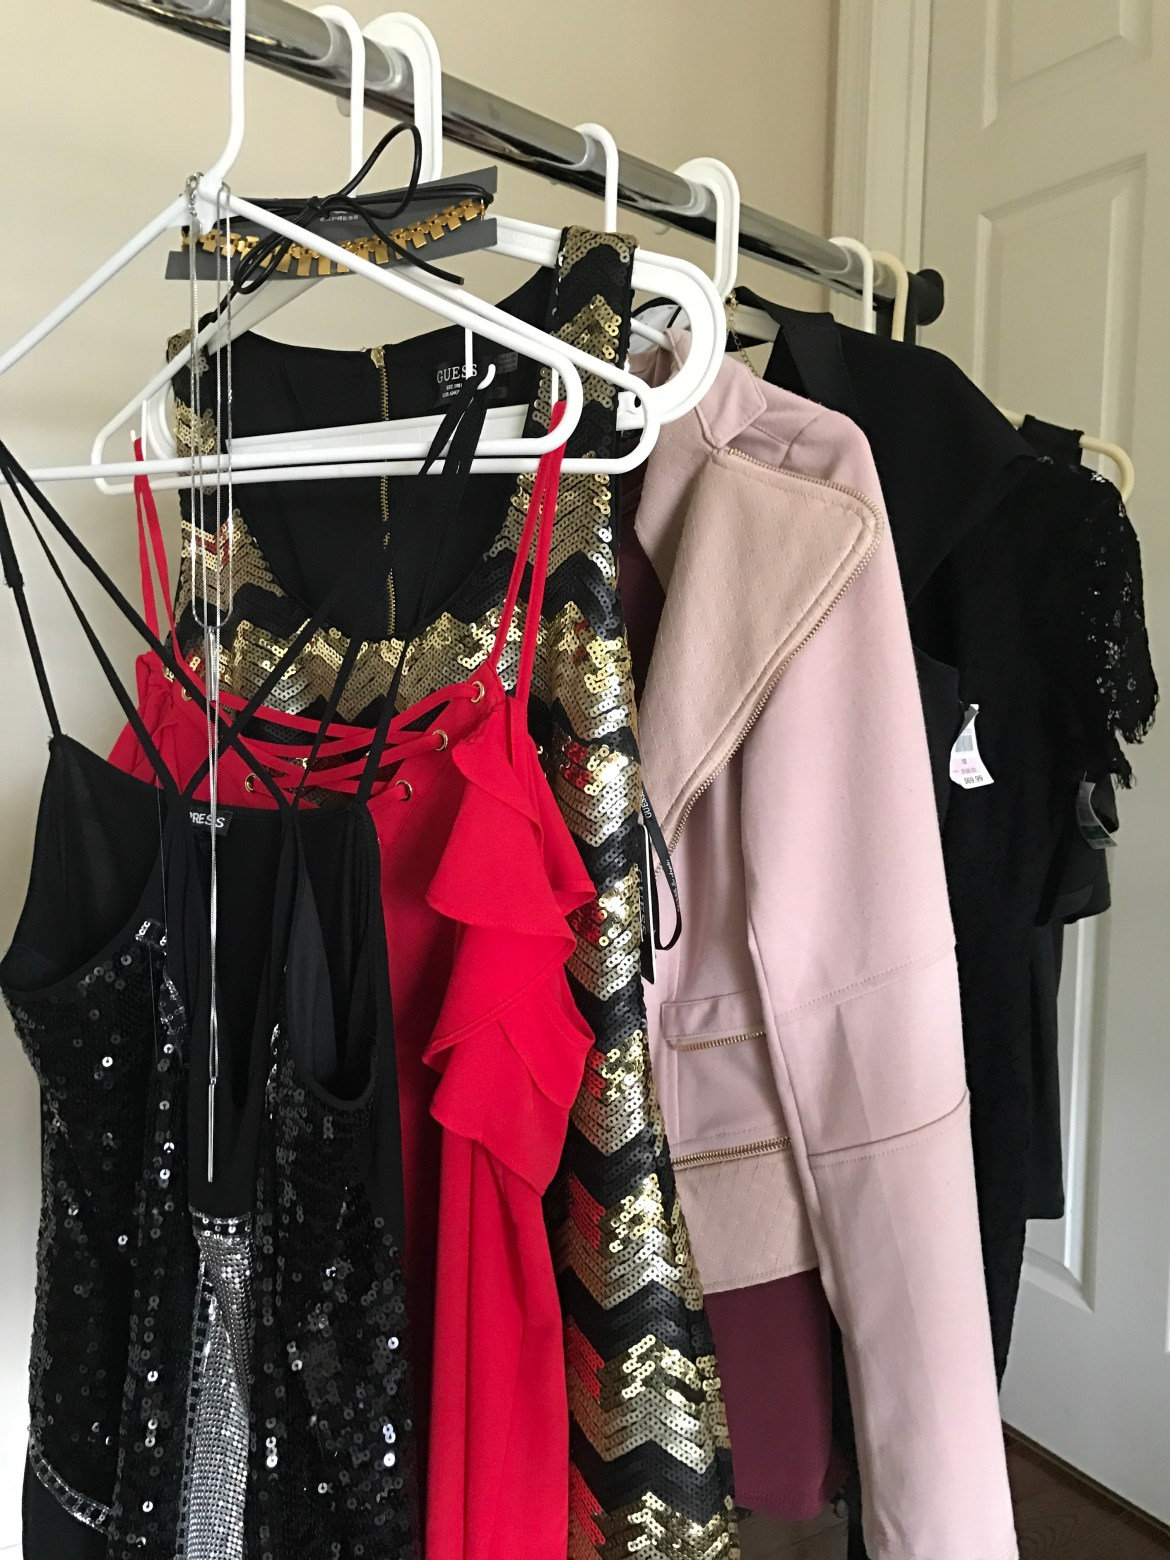 outfits hanging up that are perfect for Vegas fashion